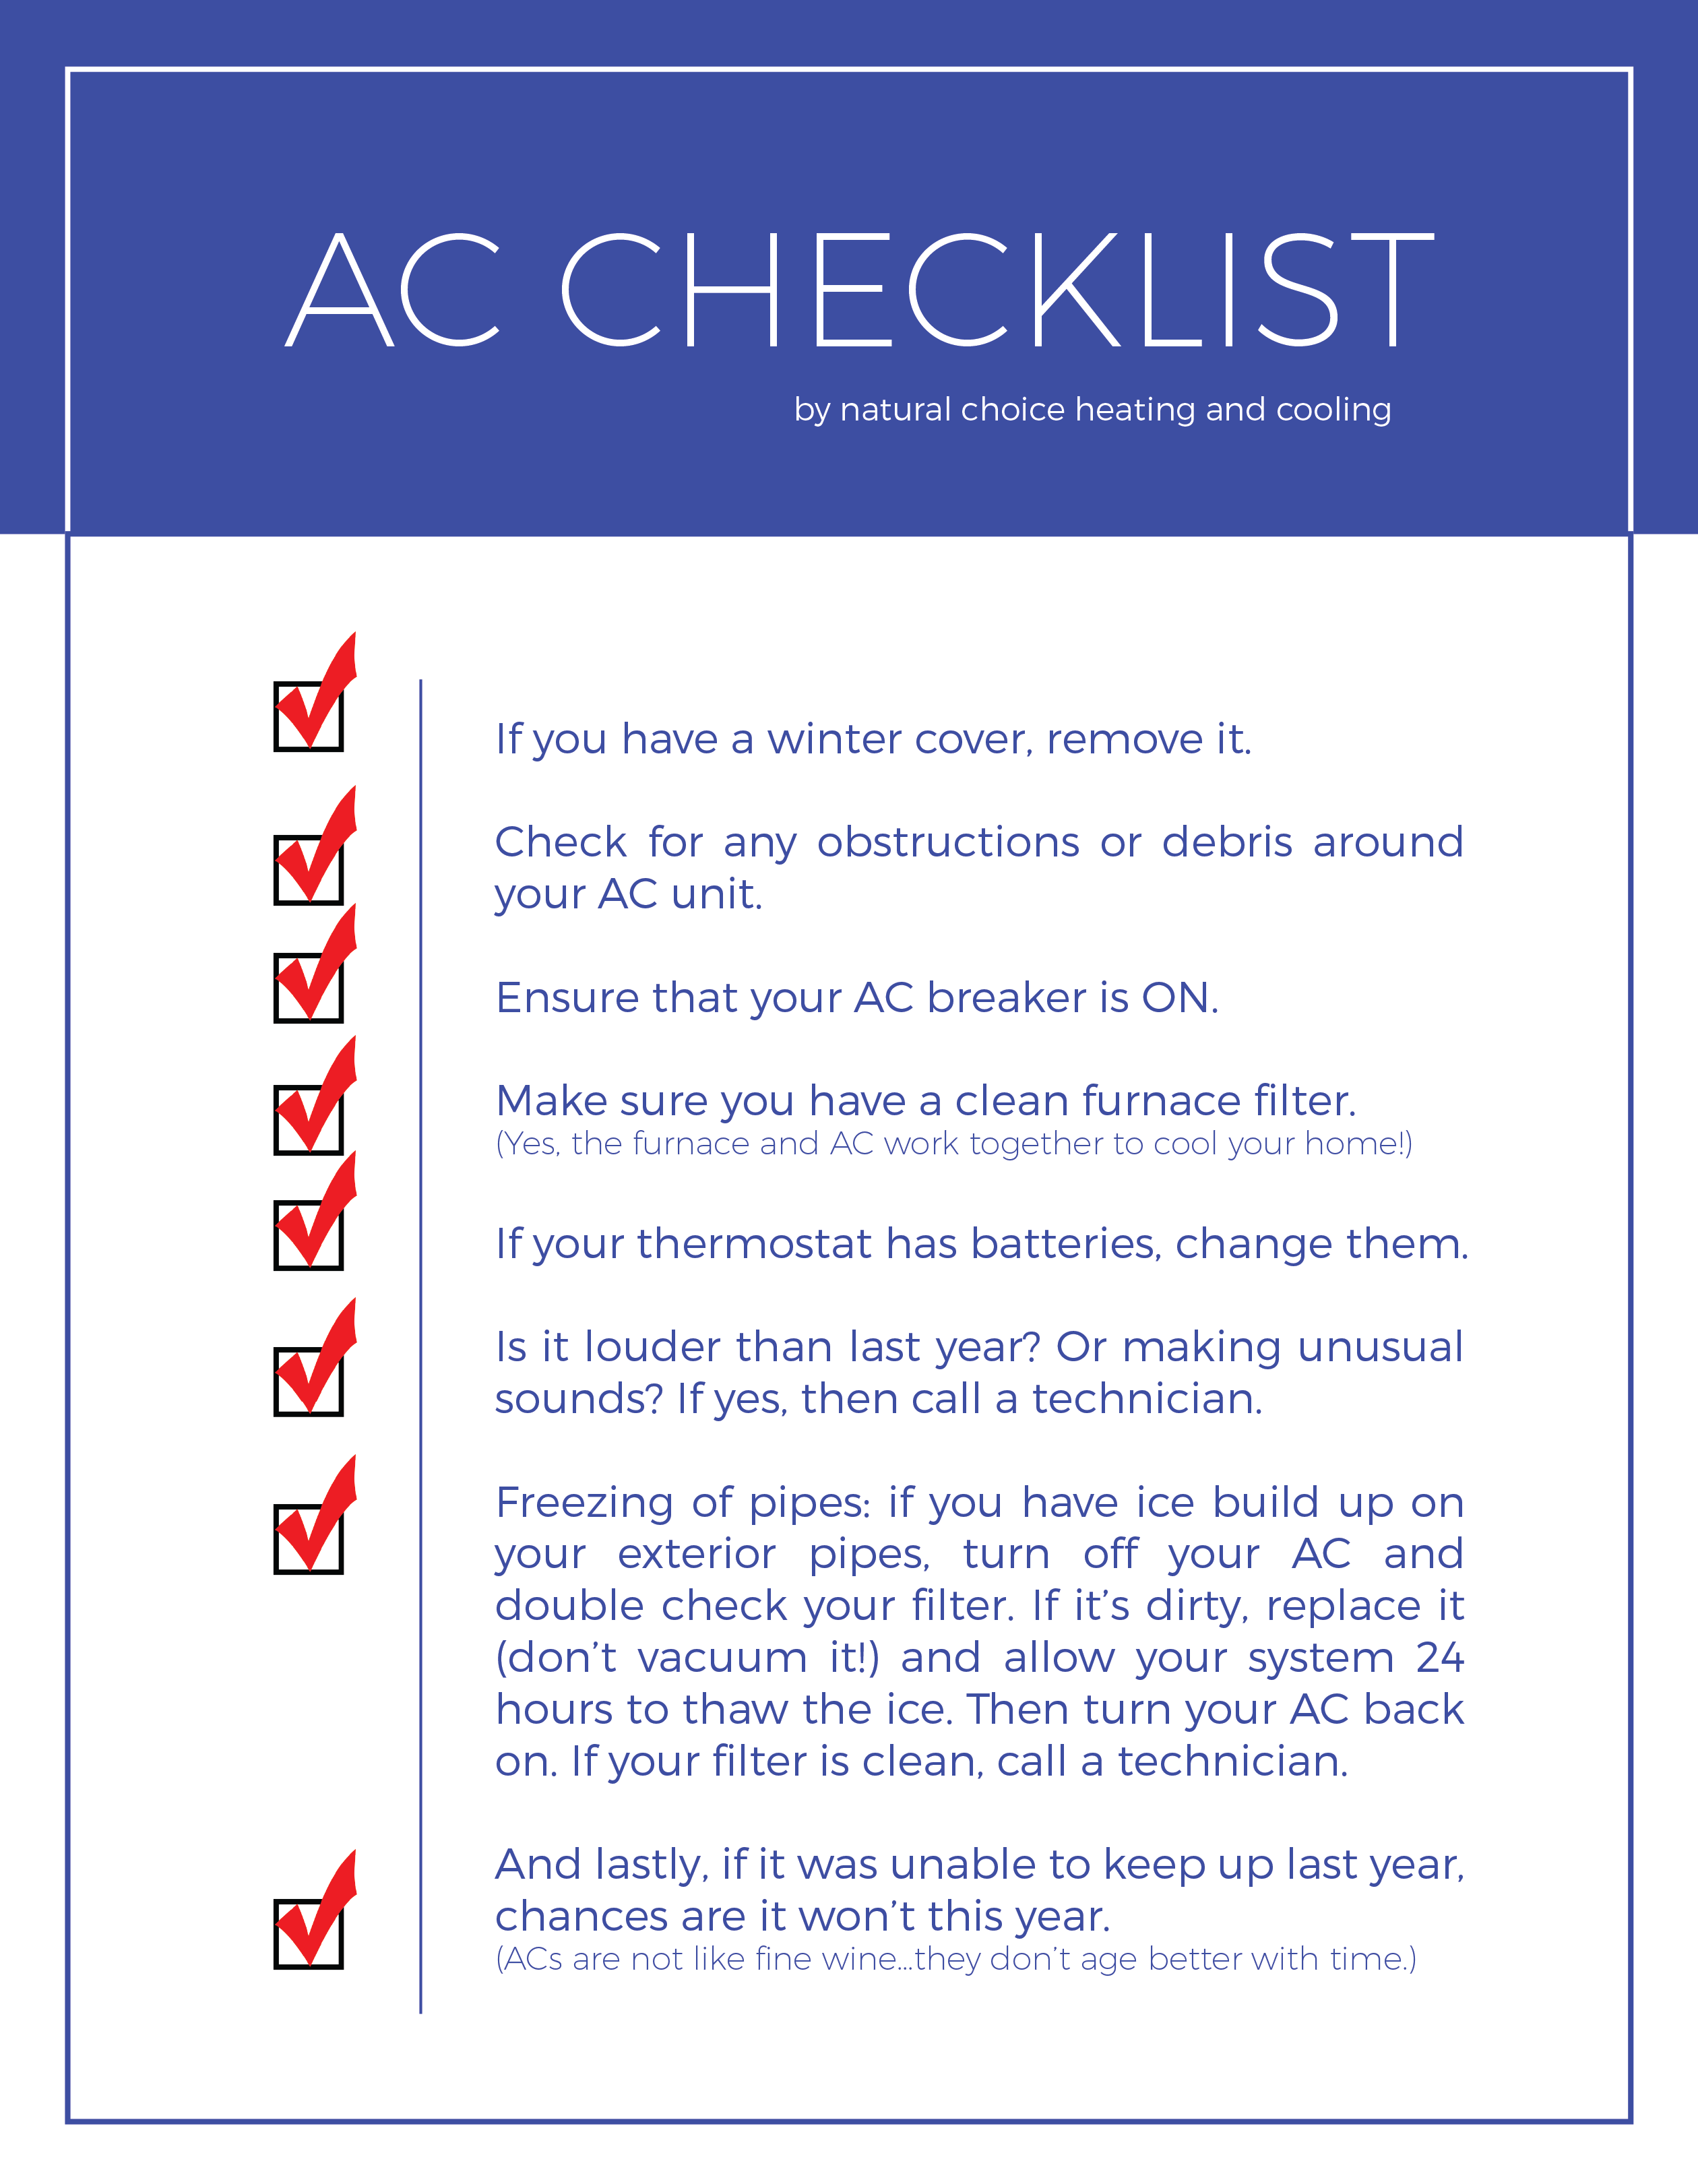 Your Ac Checklist Natural Choice Heating Amp Cooling Inc